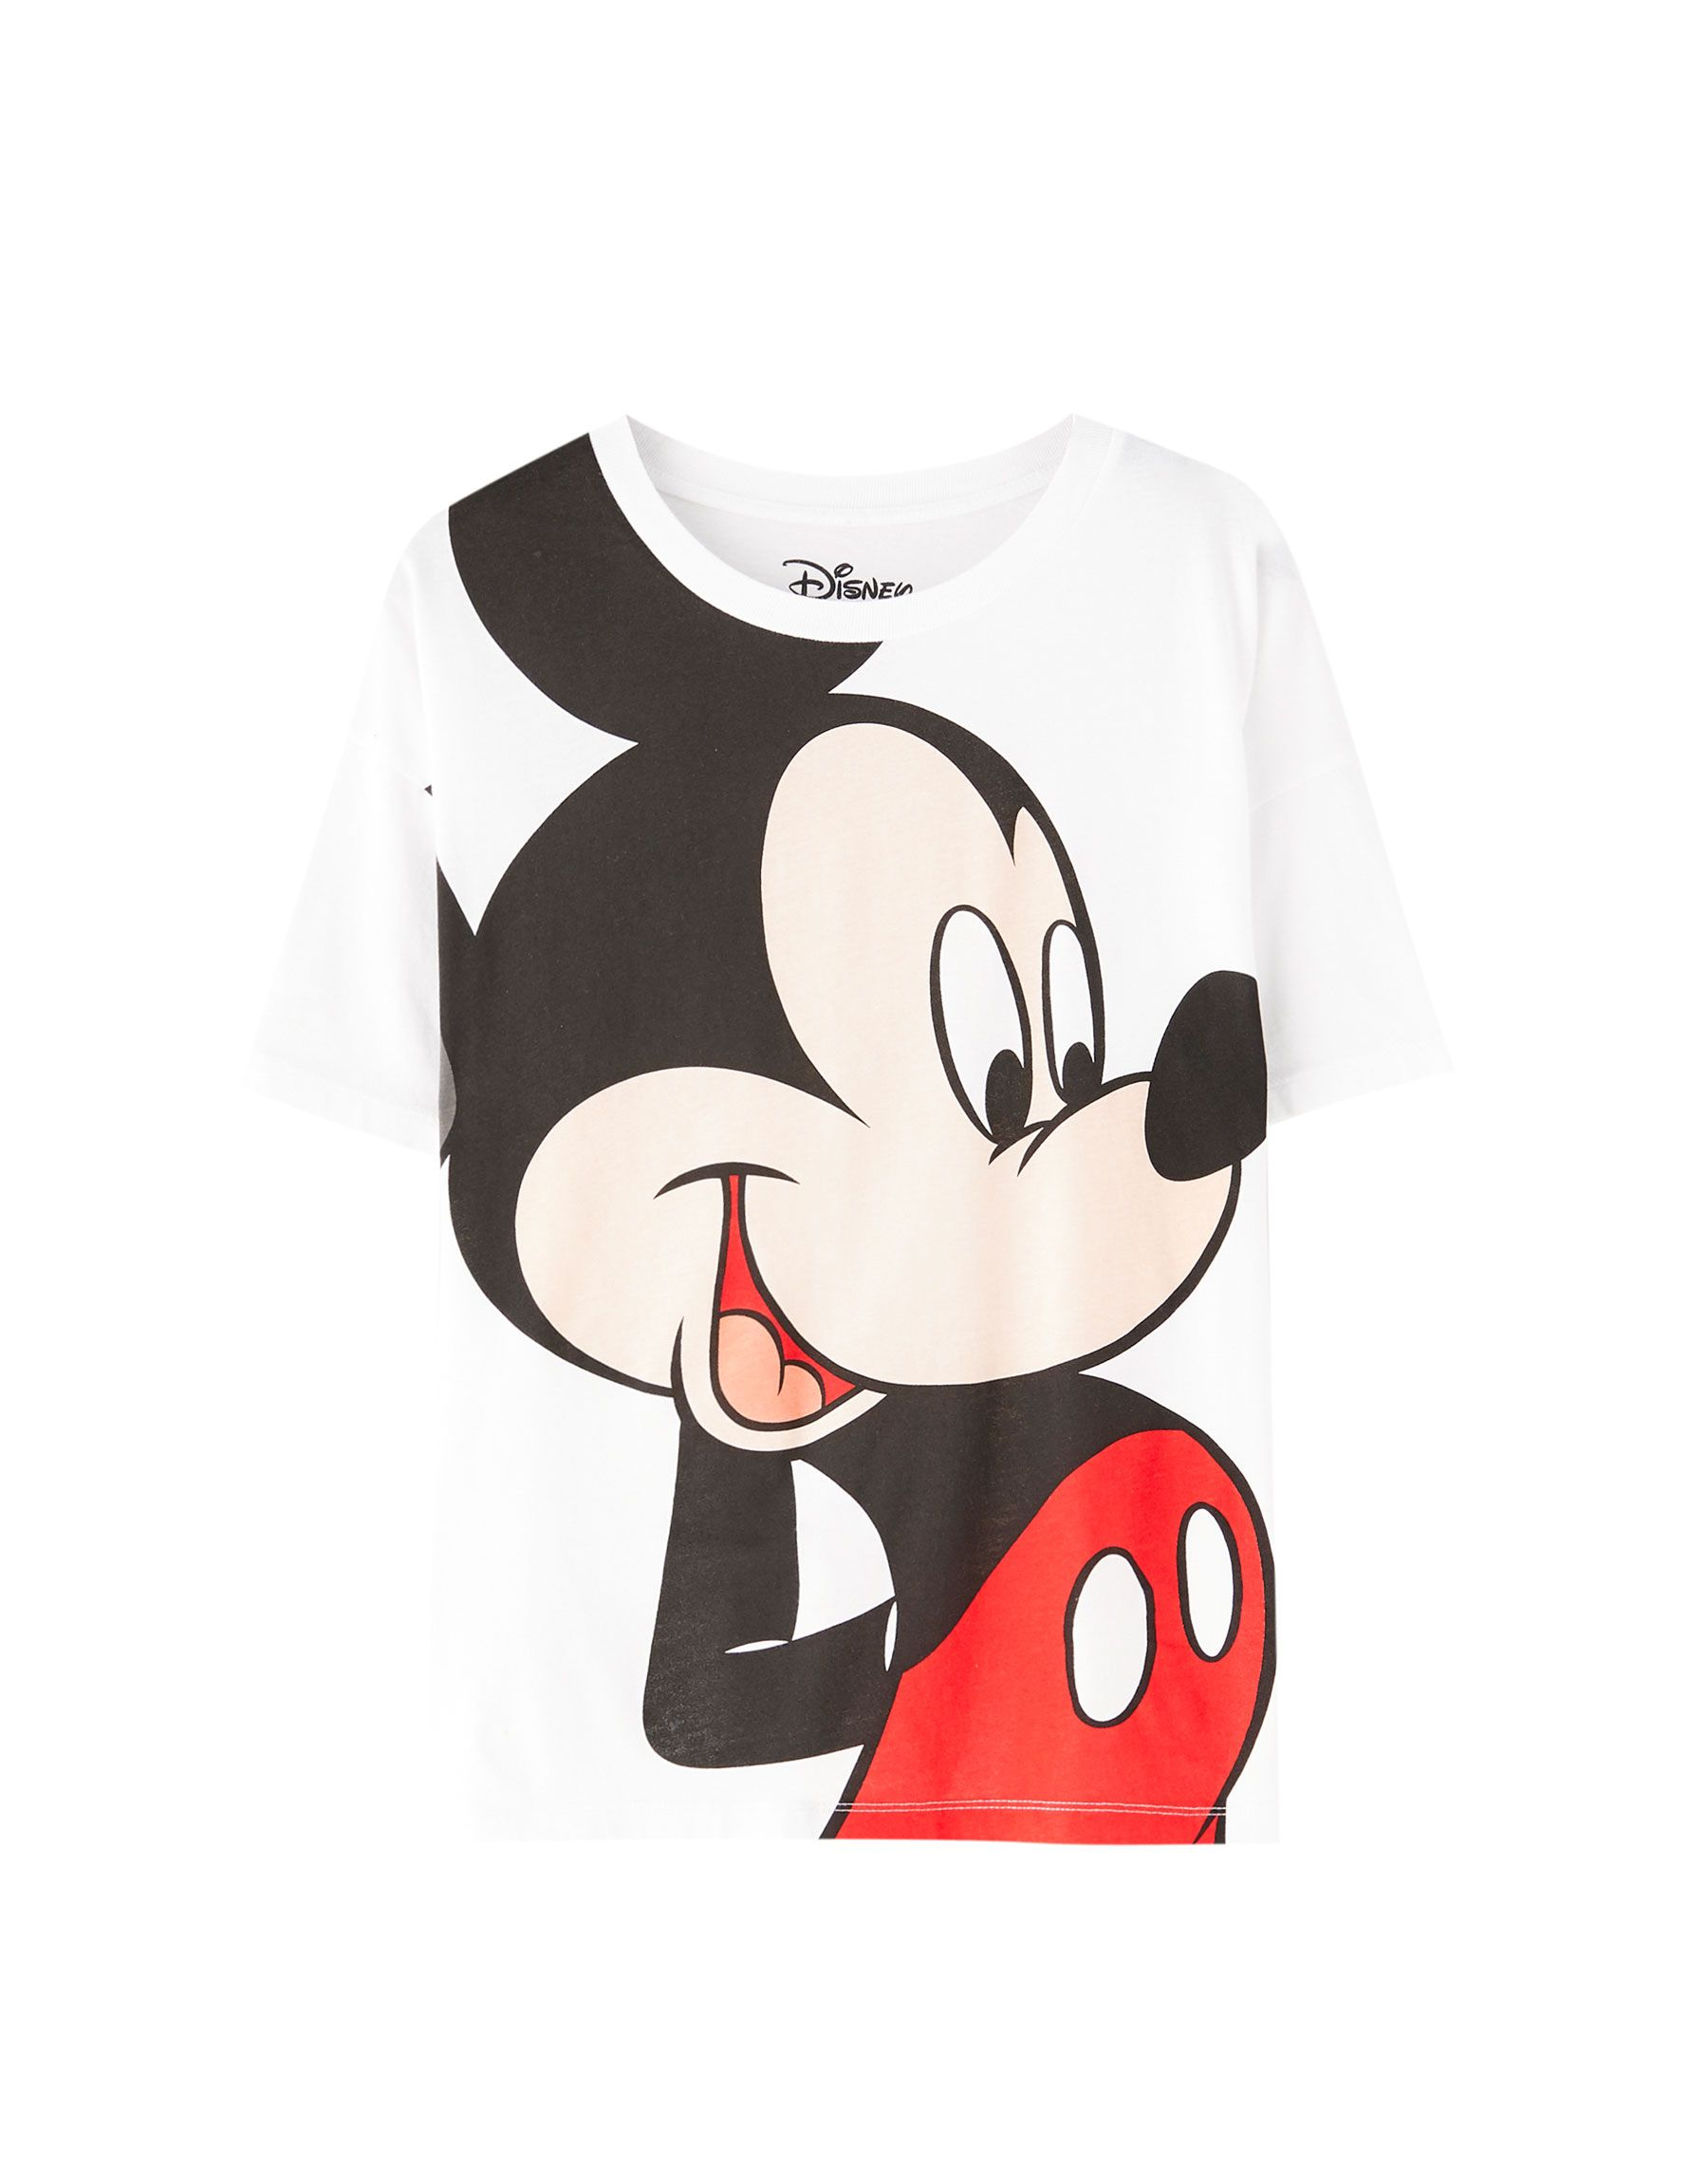 Pull Bear Female Camiseta Mickey Mouse Disney Blanco L Mickey Mouse T Shirt Disney Outfits Mickey Mouse Outfit